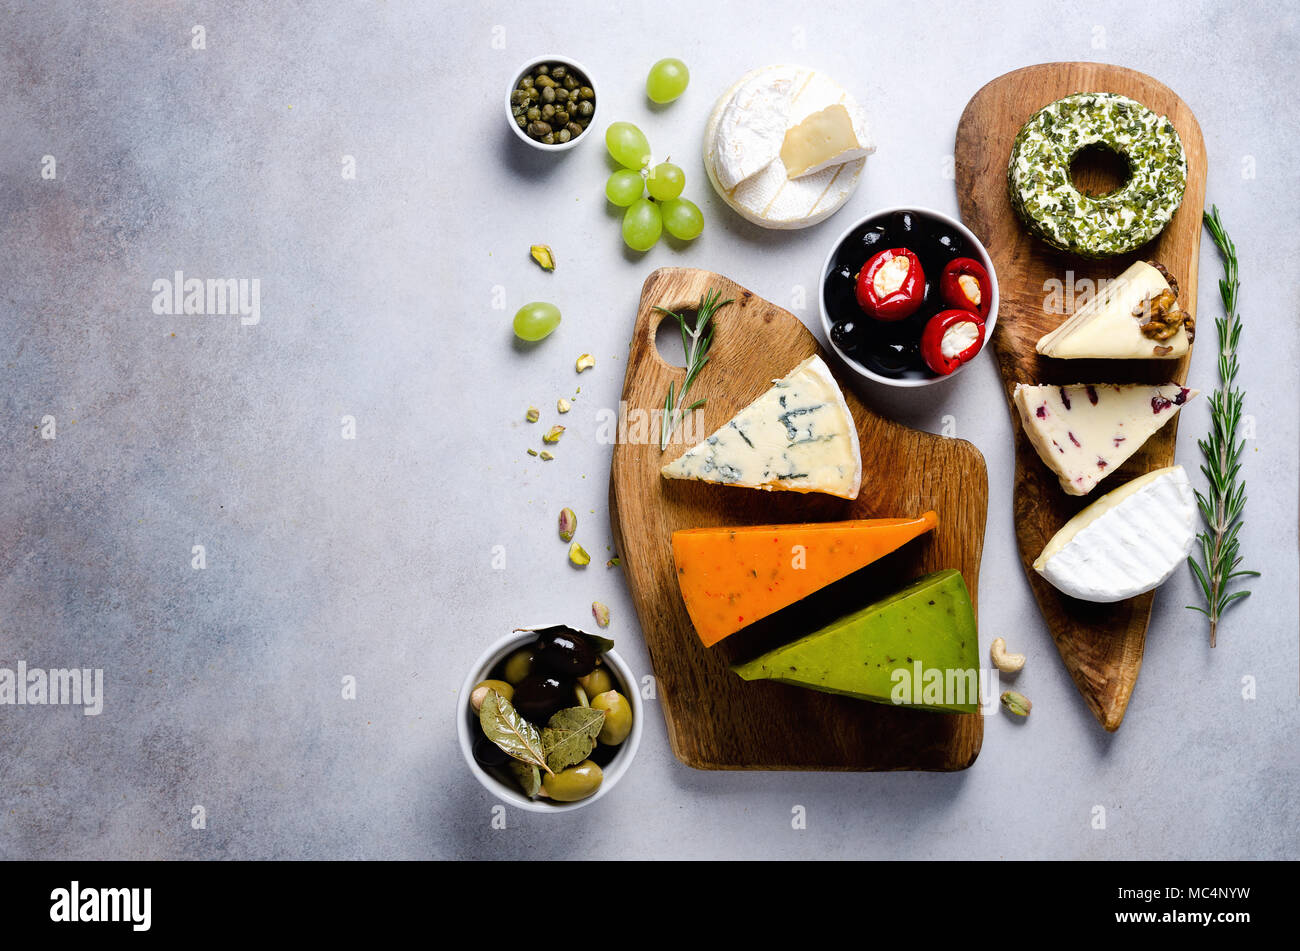 Assortment of hard, semi-soft and soft cheeses with olives, grissini bread sticks, capers, grape, on grey concrete backgound. Top view, copy space, flat lay. Cheese selection appetizer plate. Stock Photo